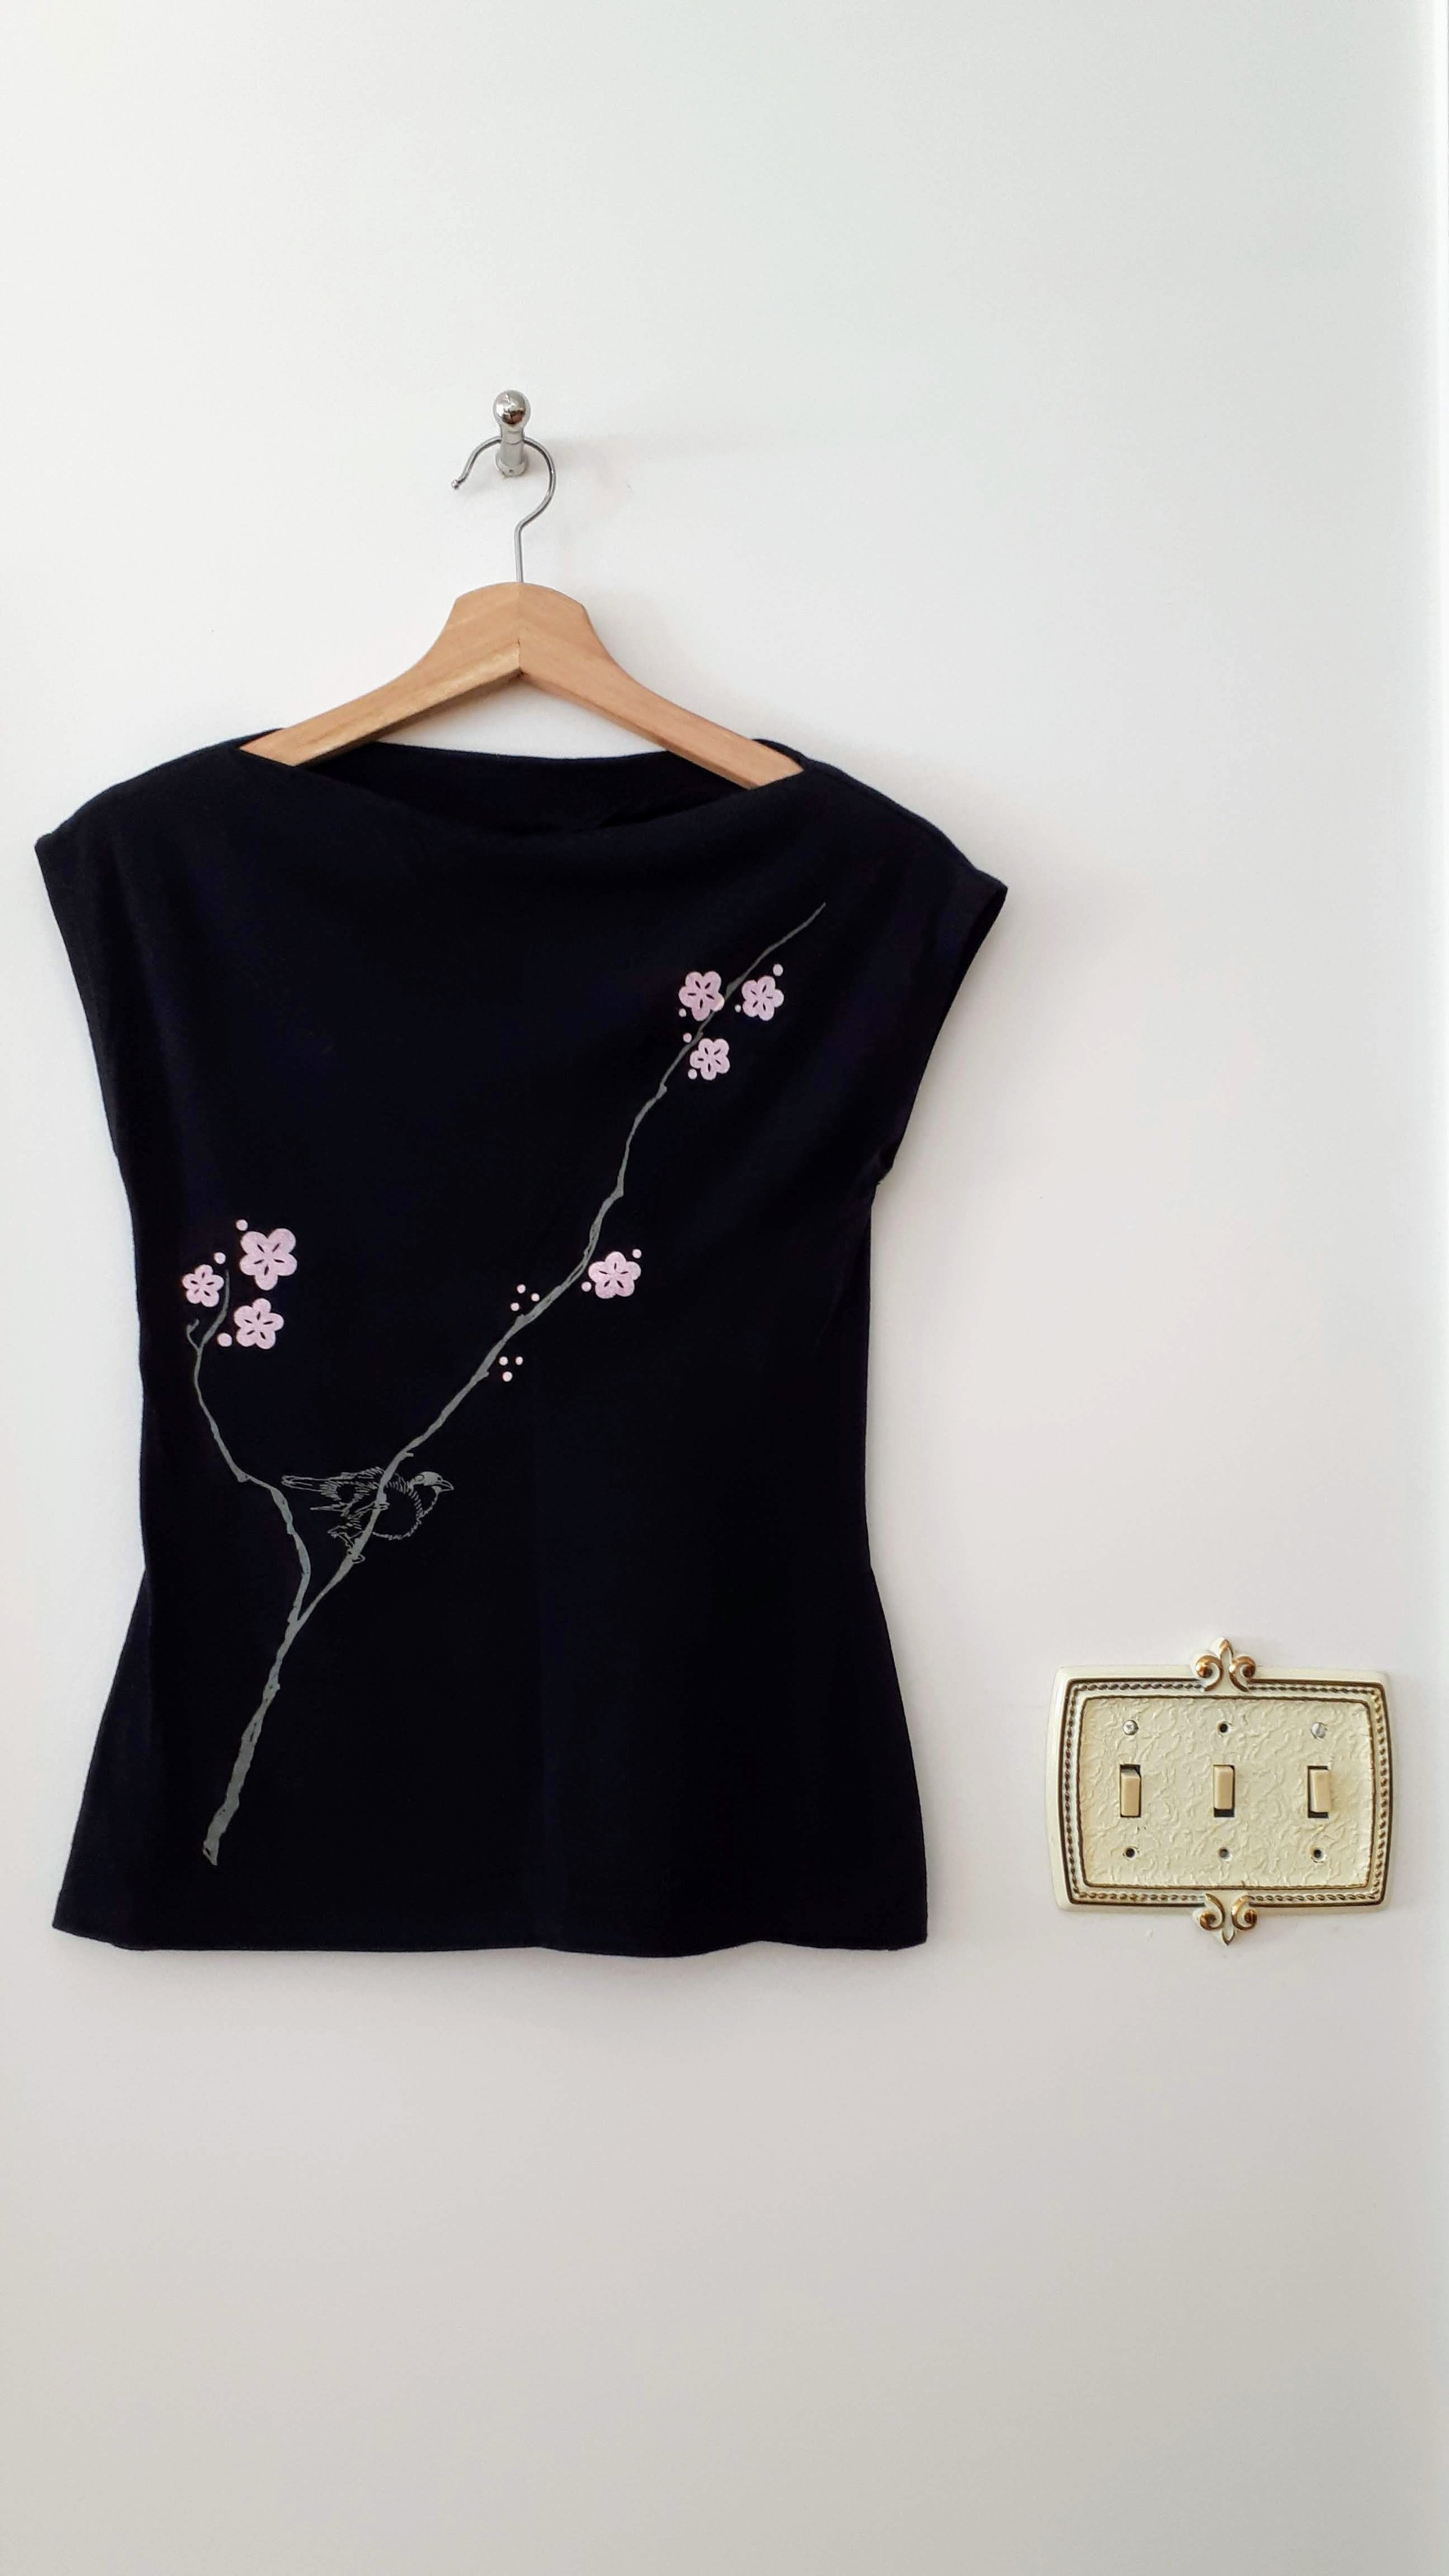 Smoking Lily top; Size S, $26